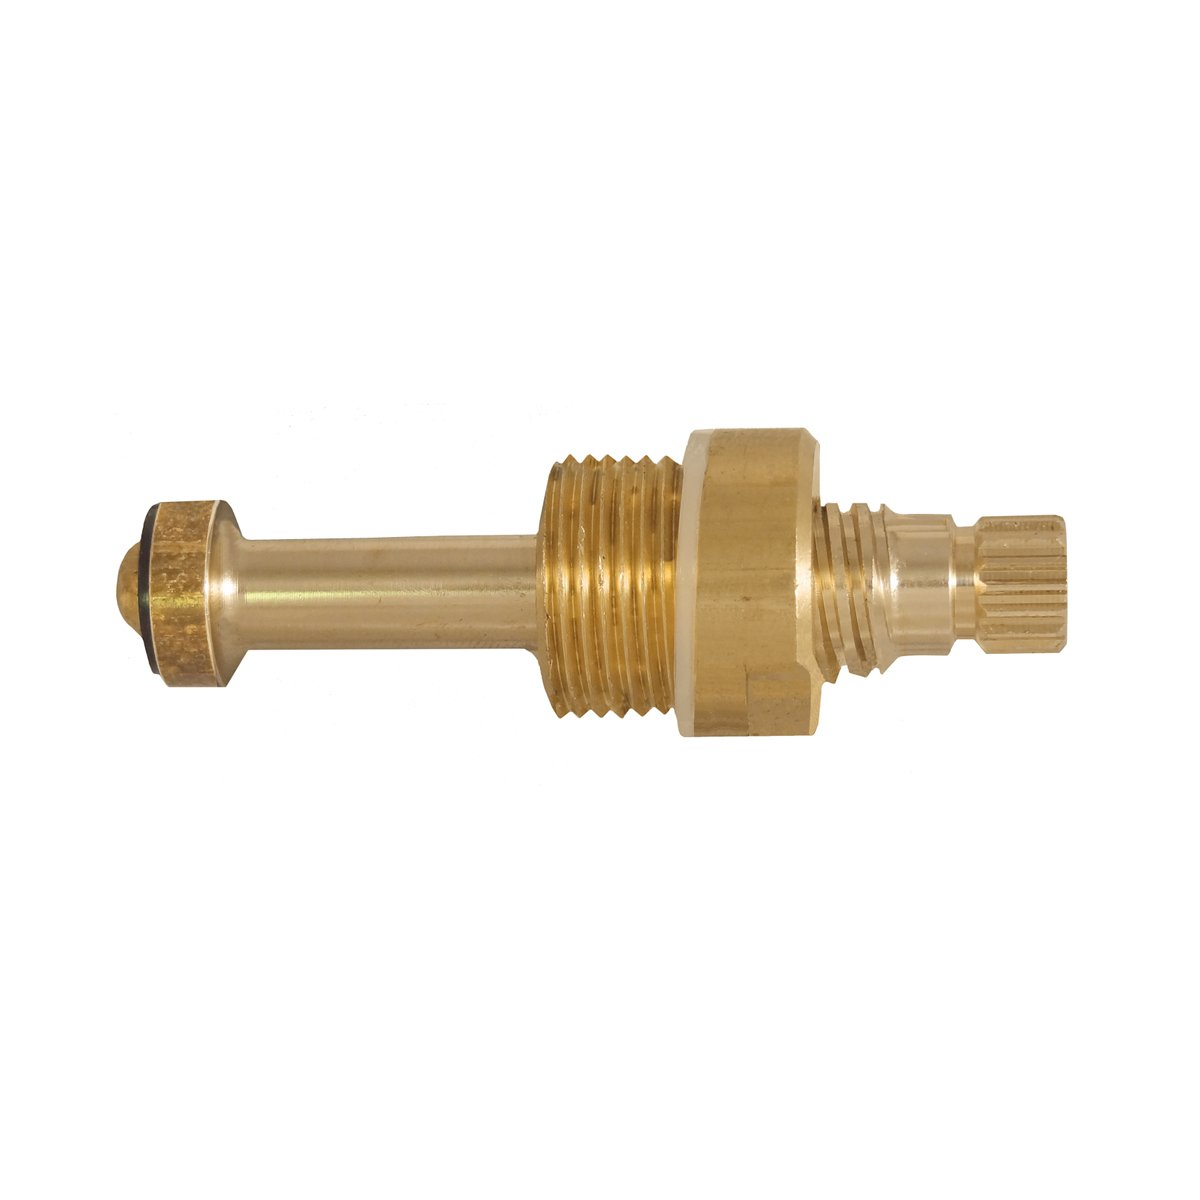 Danco 15471E 6J-1H Hot Stem for American Brass Faucets